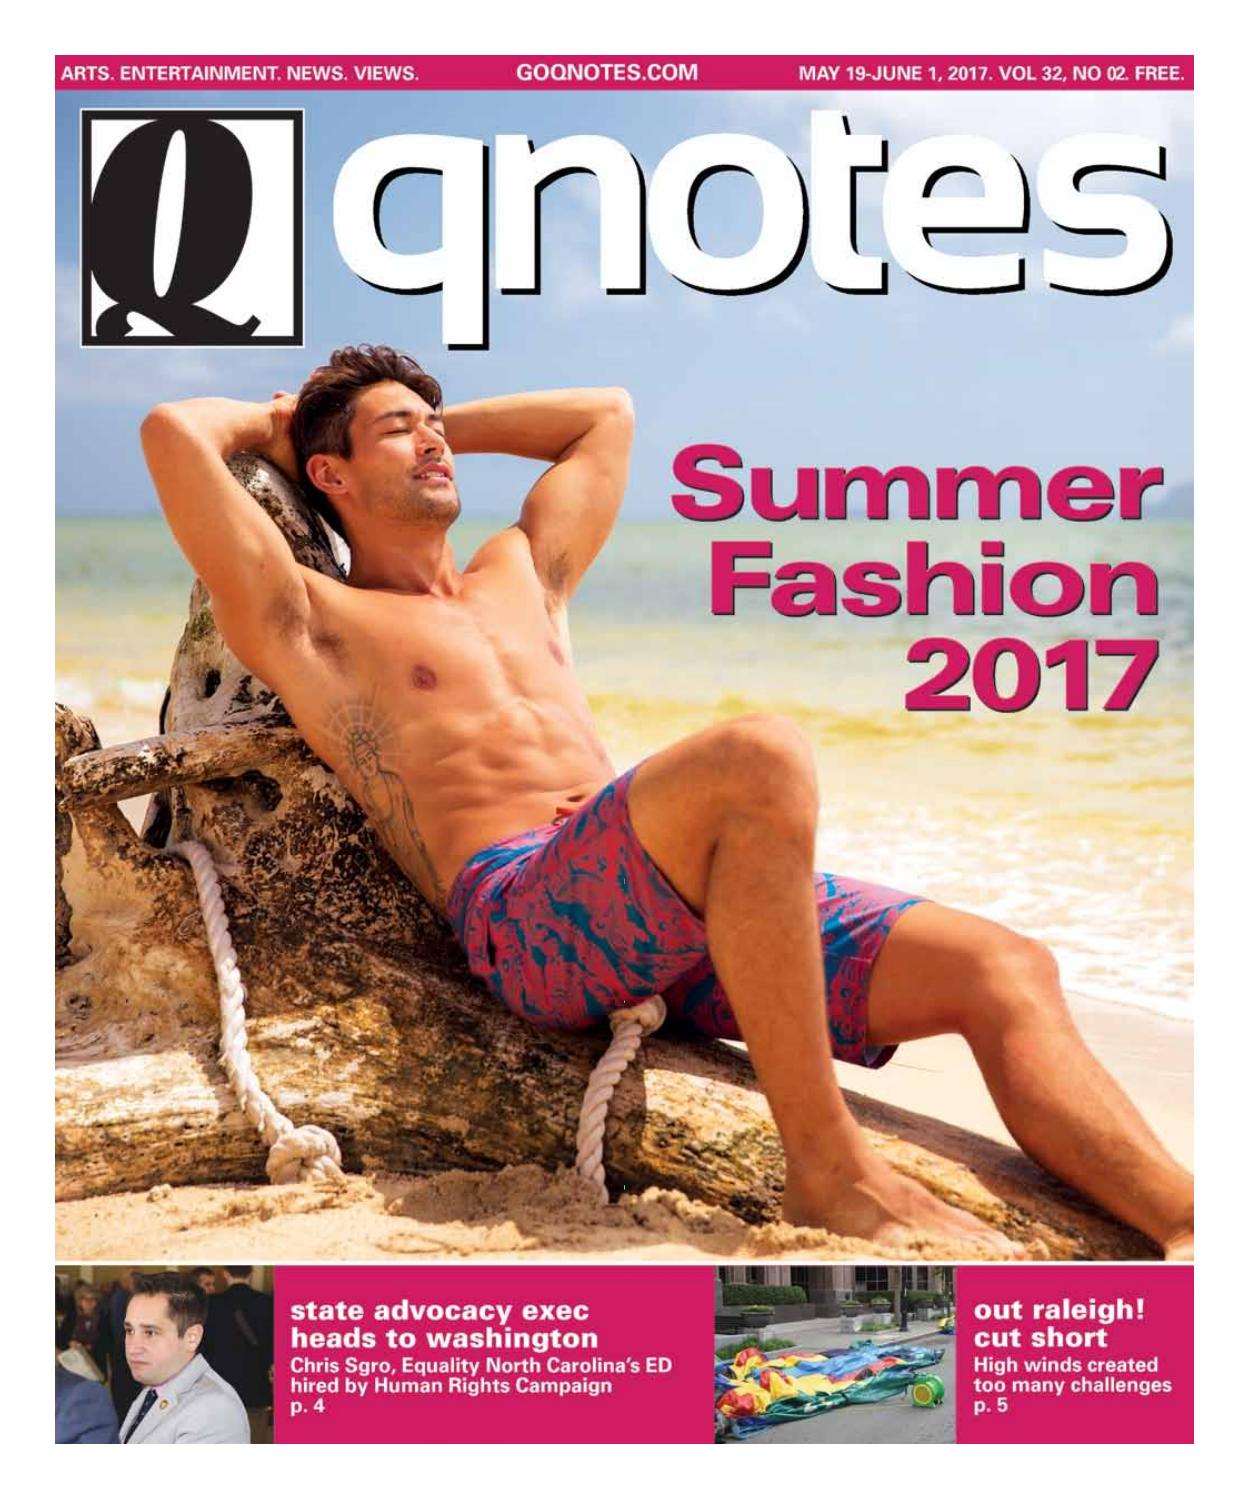 QNotes, May 19, 2017 by QNotes - issuu